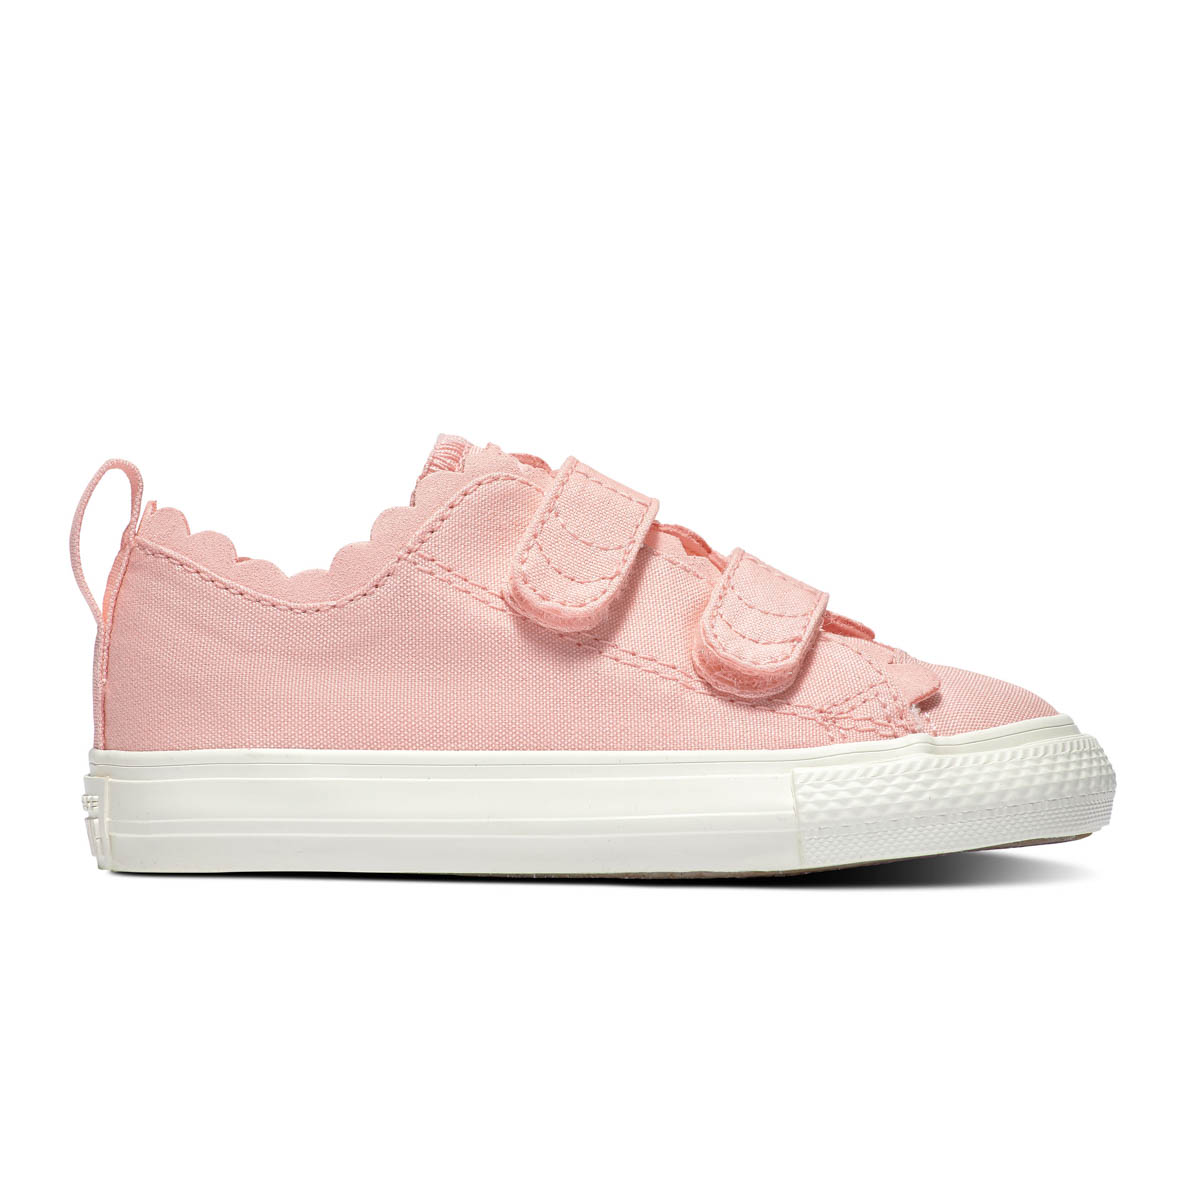 Converse Trainers - Pink - 764369C FRILLS 2V VELCRO 873c10c5eb06a